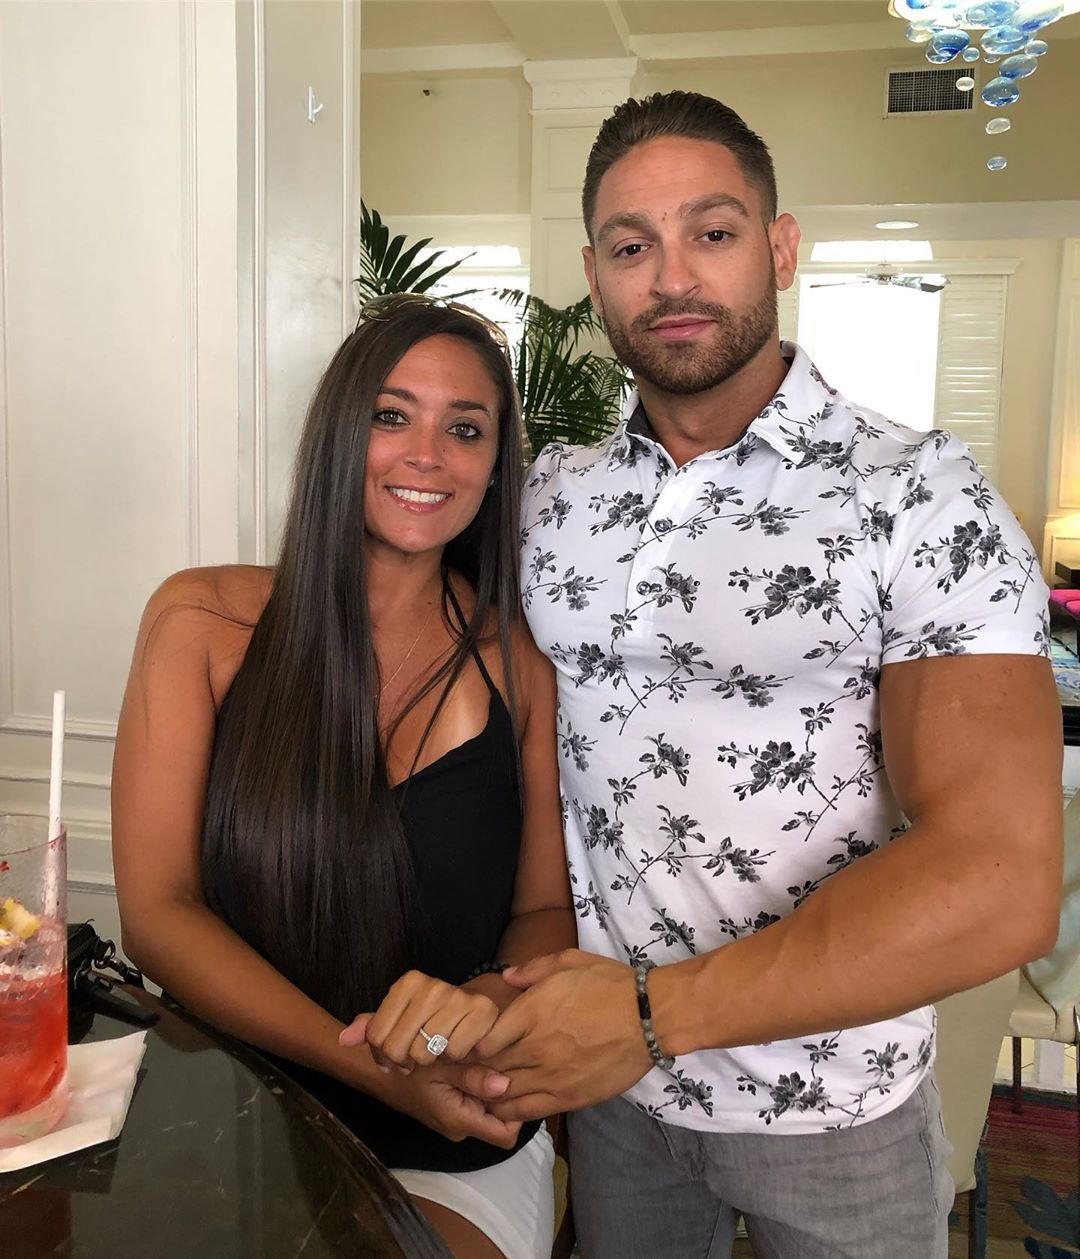 Jersey Shore's Sammi Giancola Flaunts 6-Pack Abs Before Wedding